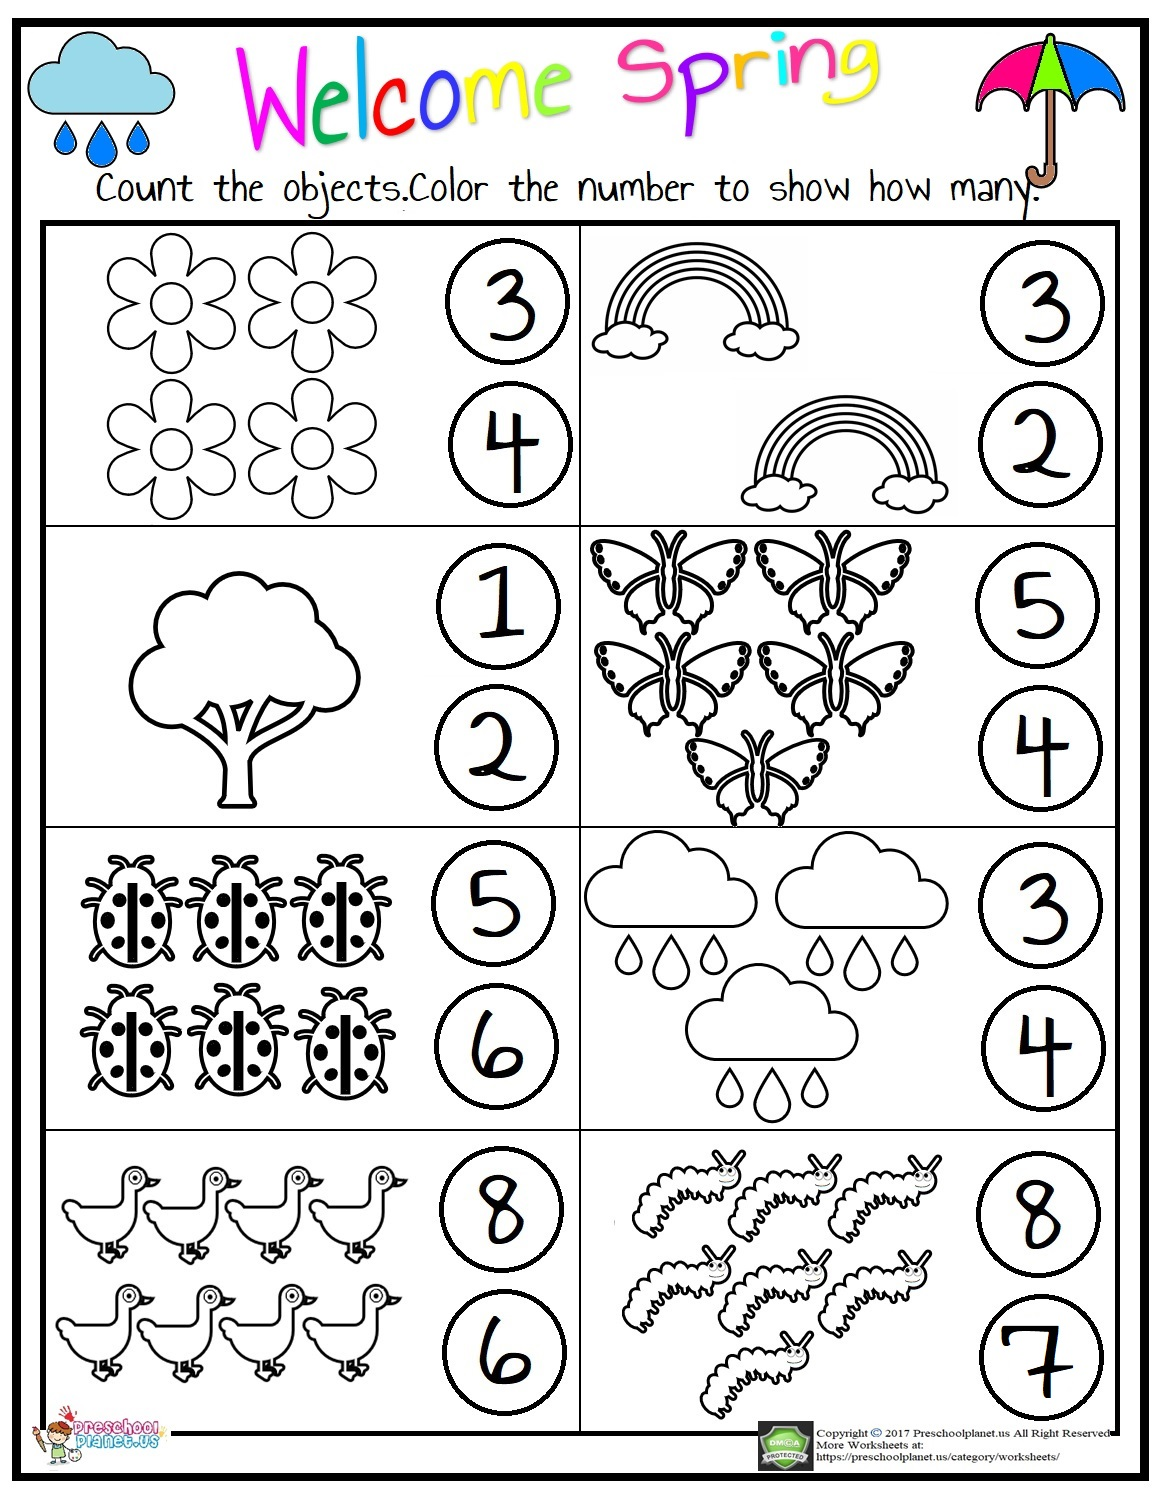 Preschoolplanet Preschool Craft Ideas And Worksheets